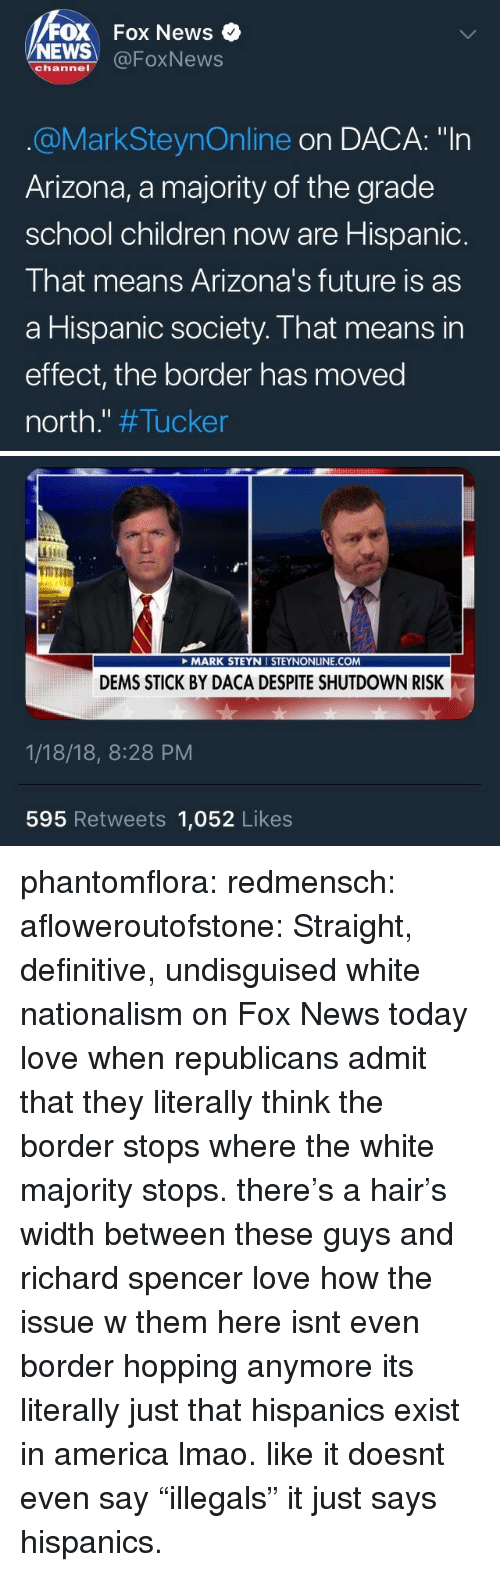 """Foxnews: FOX Fox News  NEWS @FoxNews  channel  @MarkSteynOnline on DACA: """"In  Arizona, a majority of the grade  school children now are Hispanic.  That means Arizona's future is as  a Hispanic society. That means in  effect, the border has moved  north."""" #Tucker   TOT  it  MARK STEYN I STEYNONLINE.COM  DEMS STICK BY DACA DESPITE SHUTDOWN RISK  1/18/18, 8:28 PM  595 Retweets 1,052 Likes phantomflora: redmensch:  afloweroutofstone: Straight, definitive, undisguised white nationalism on Fox News today love when republicans admit that they literally think the border stops where the white majority stops. there's a hair's width between these guys and richard spencer   love how the issue w them here isnt even border hopping anymore its literally just that hispanics exist in america lmao. like it doesnt even say """"illegals"""" it just says hispanics."""